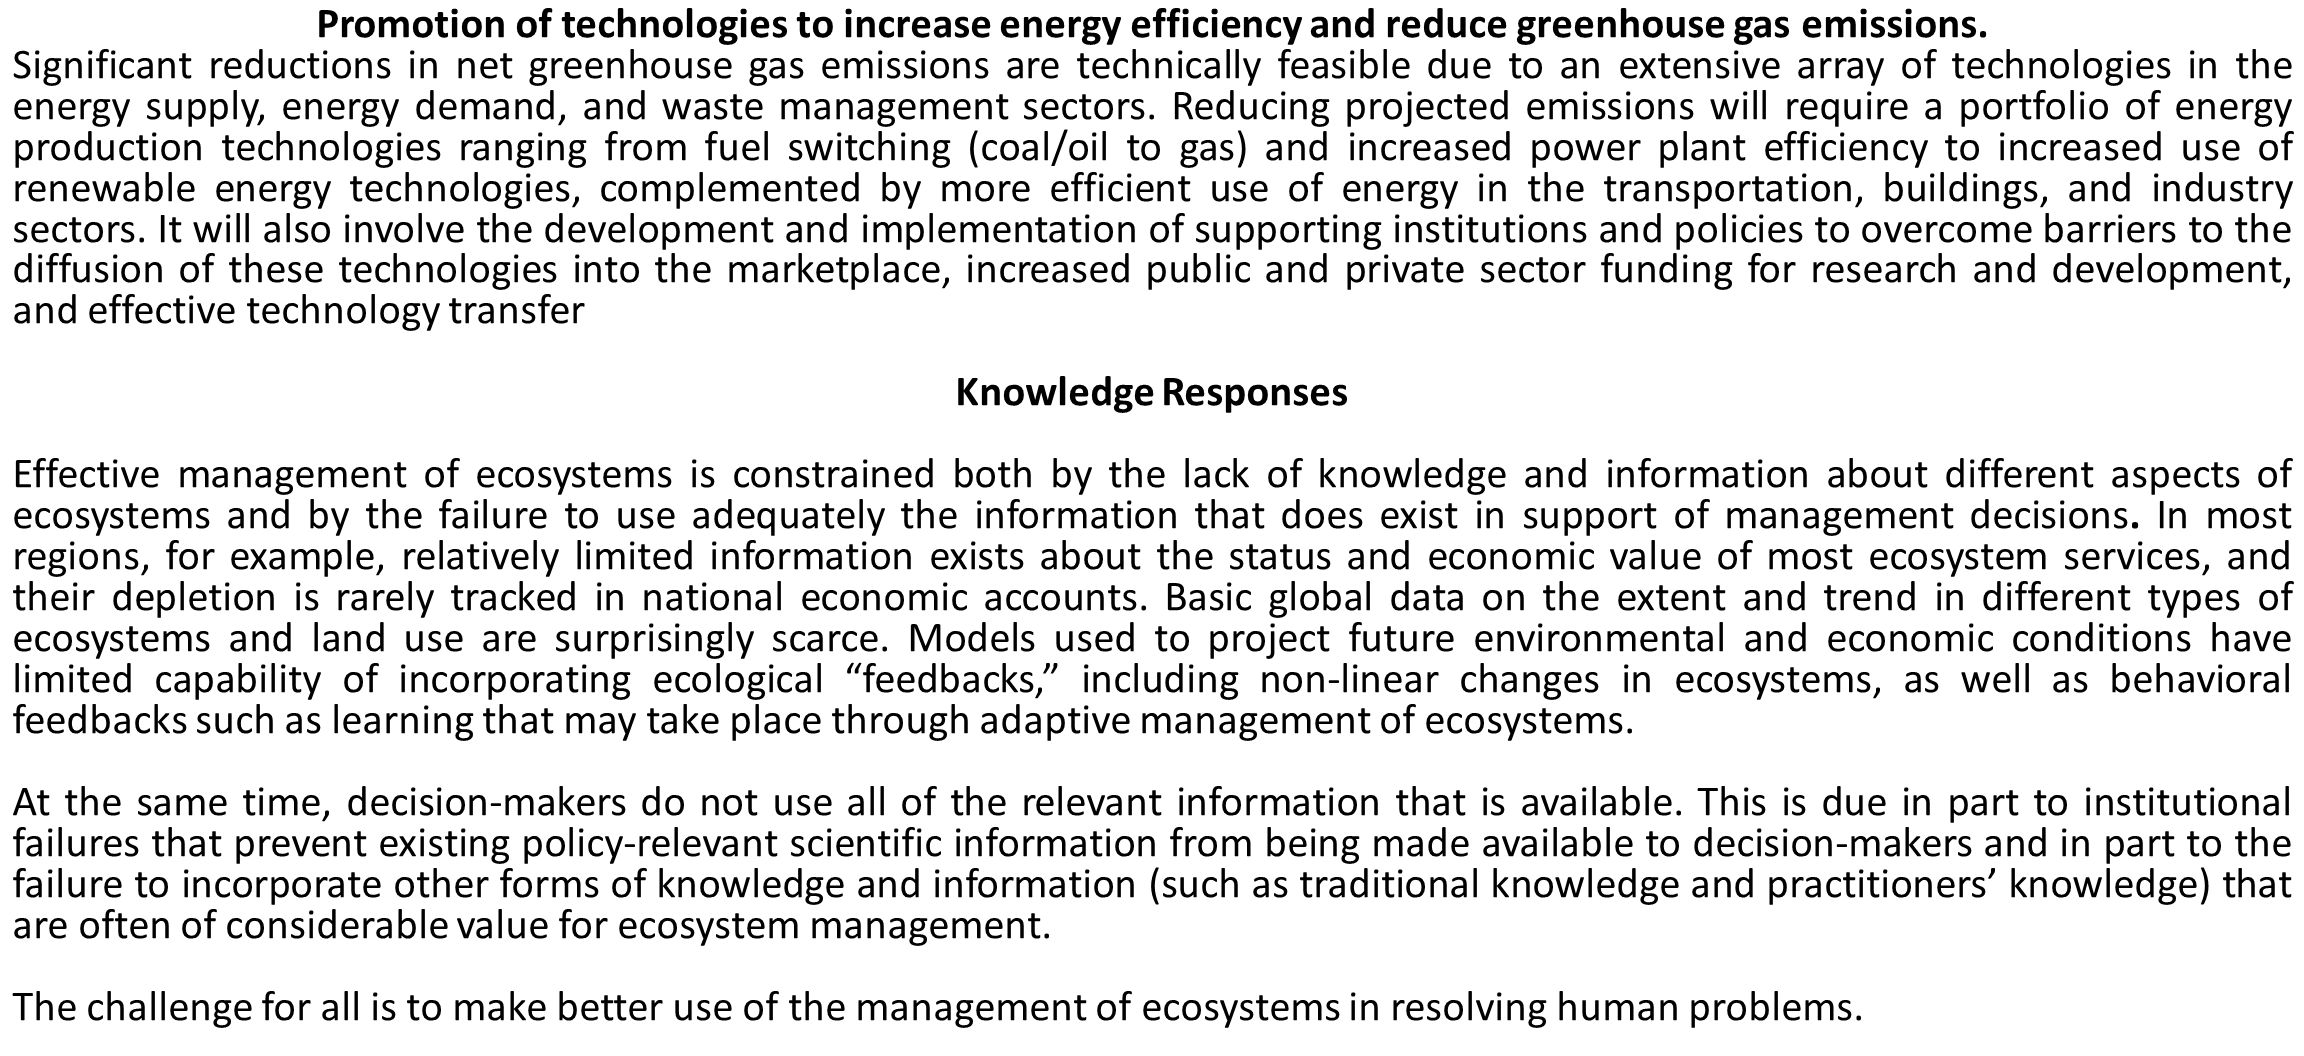 Promotion of technologies to increase energy efficiency and reduce greenhouse gas emissions.